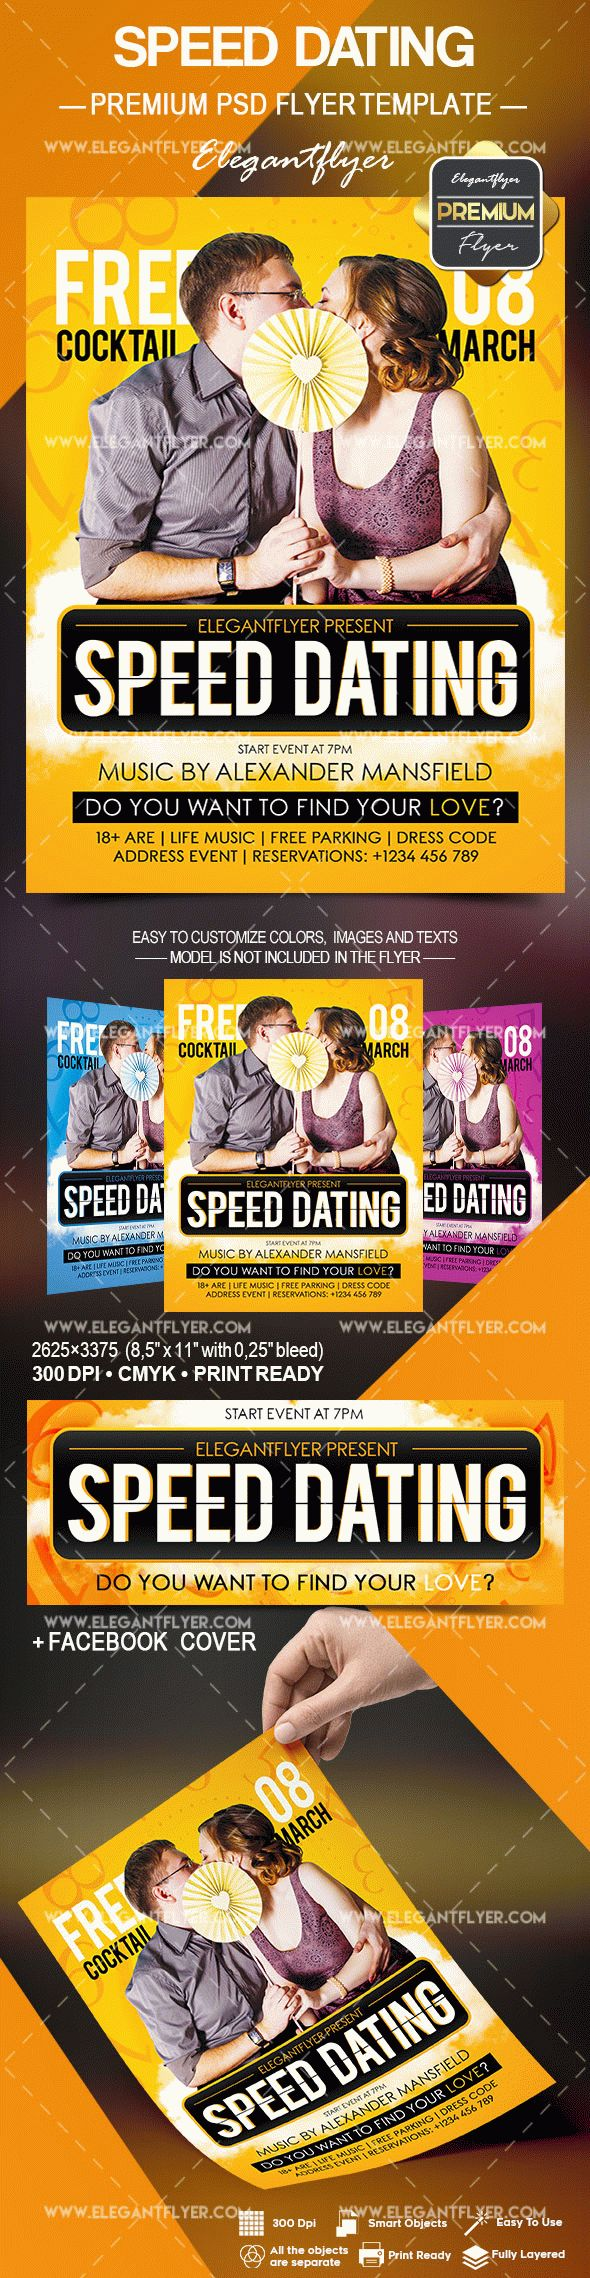 Free speed dating flyer templates